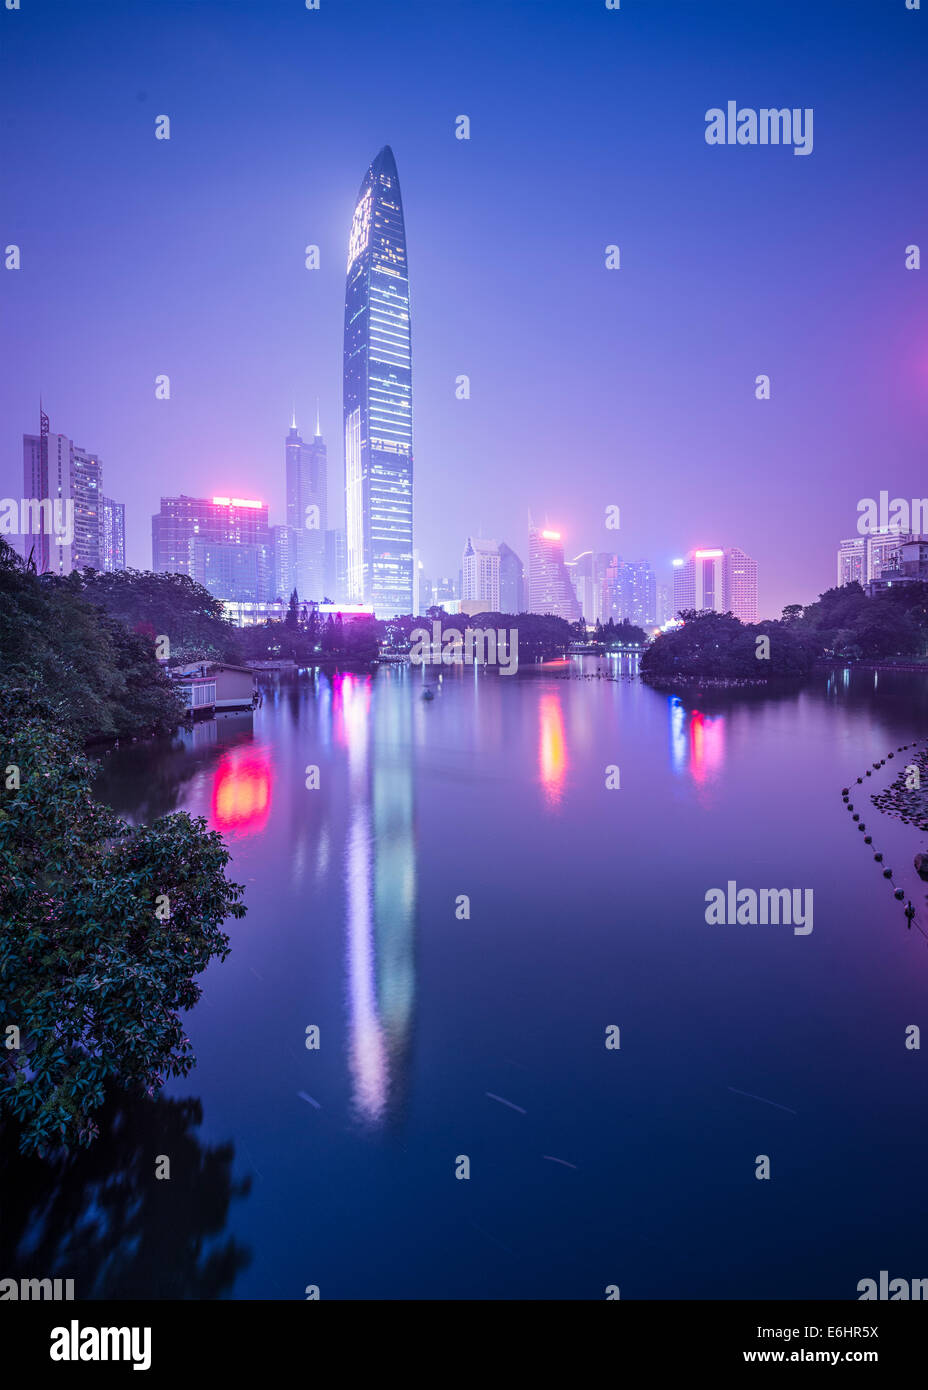 Shenzhen, China city skyline at twilight. - Stock Image